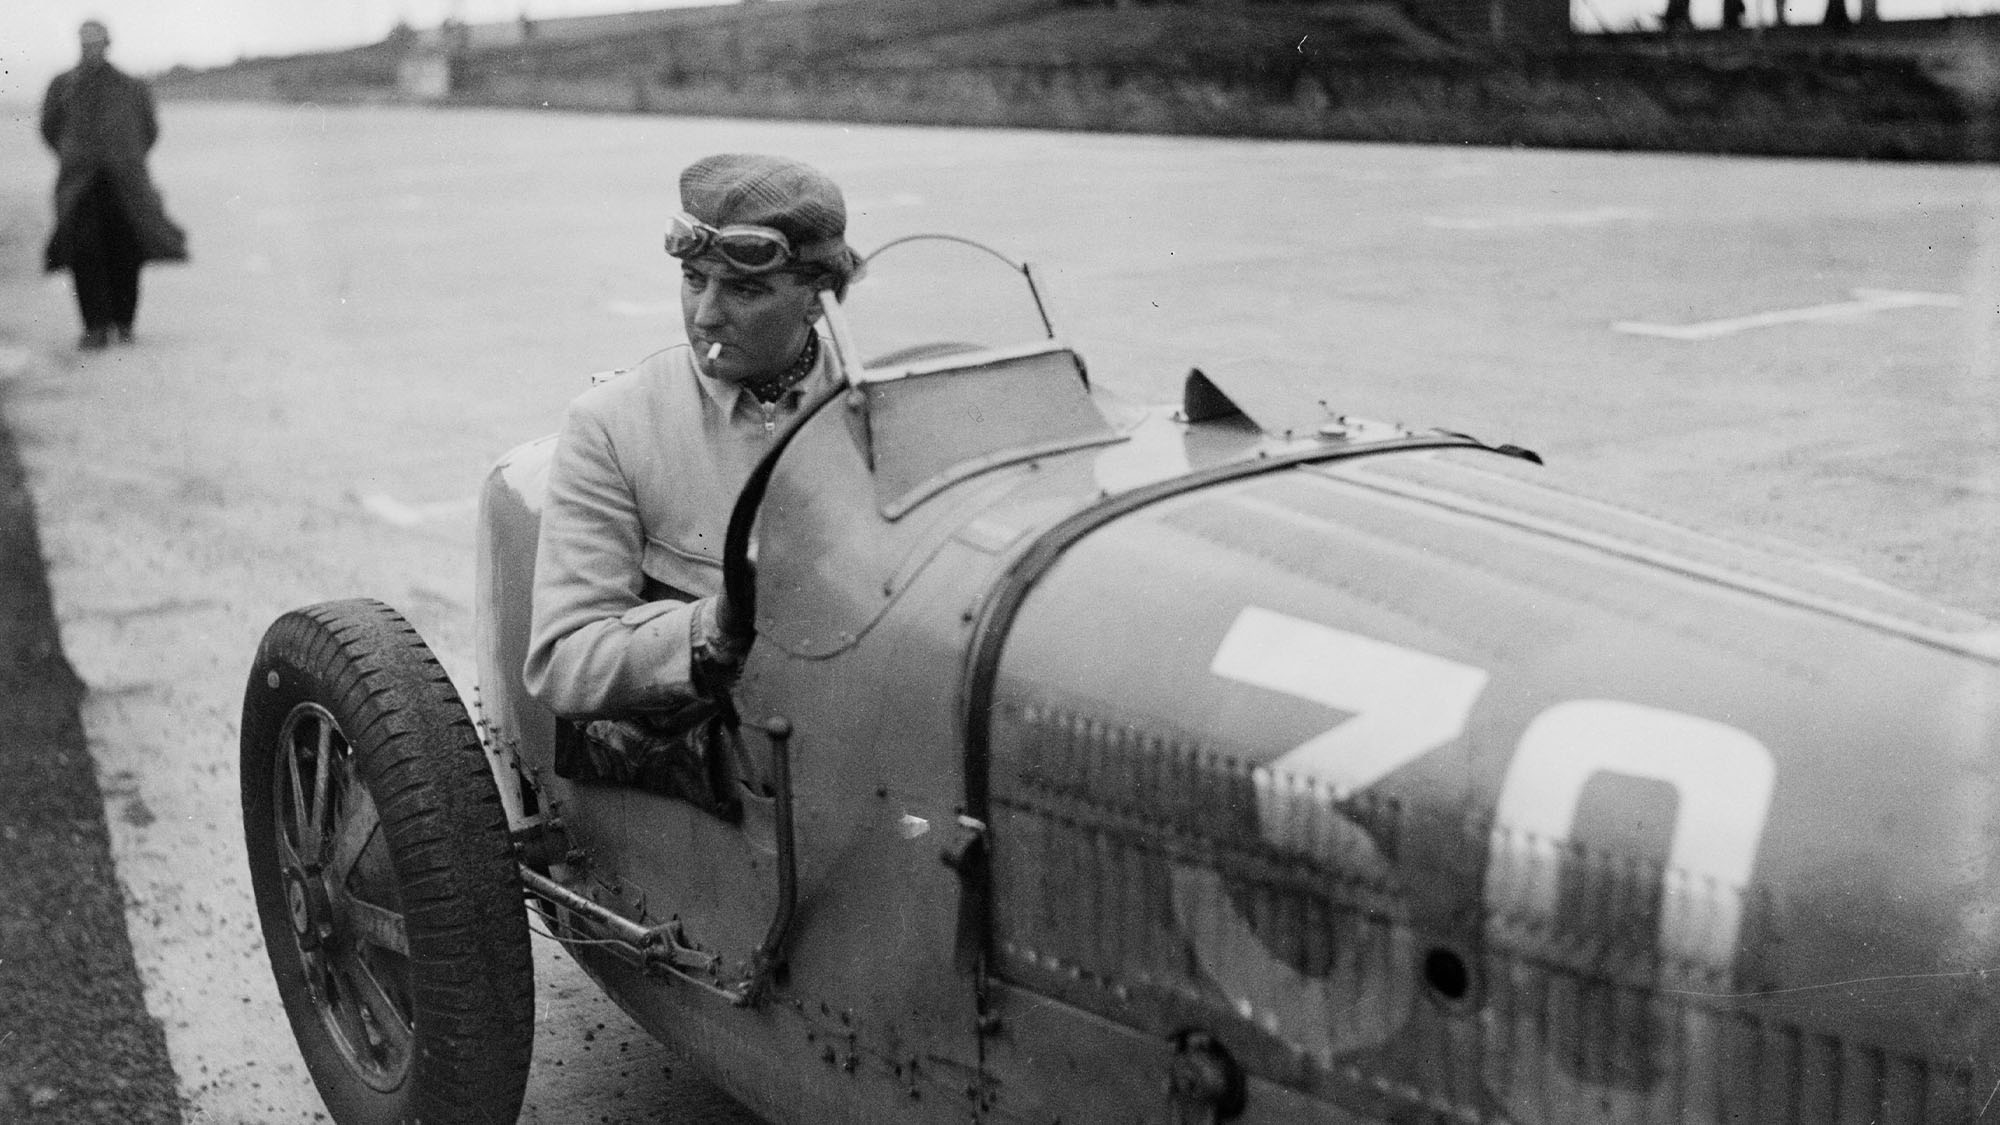 GERMANY - DECEMBER 05: Photograph by Zoltan Glass. British Grand Prix racing driver Charles Frederick William Grover-Williams was known as